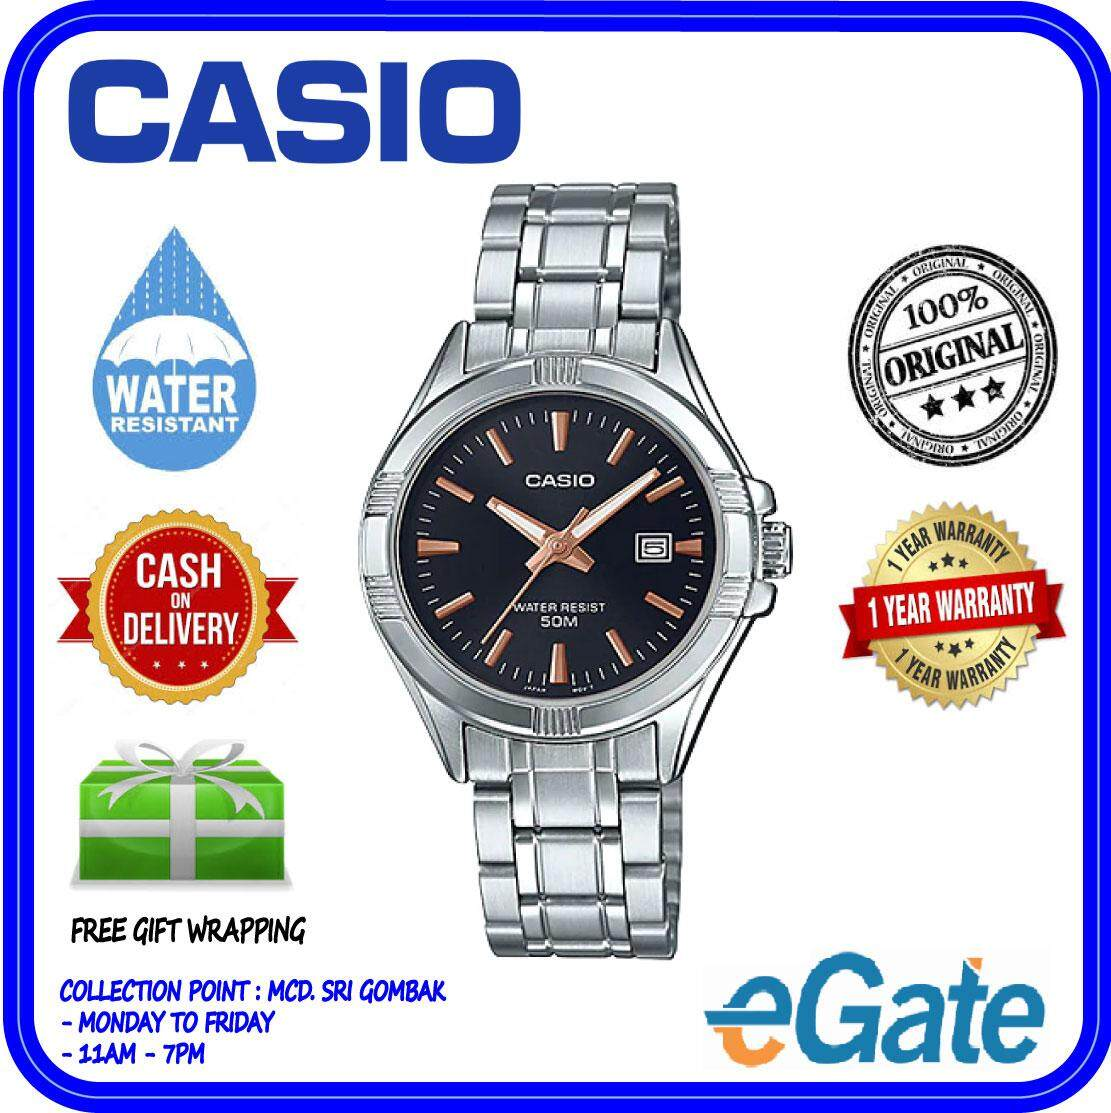 (2 YEARS WARRANTY) Casio LTP-1308D-1A2V Women Analog Date Functioning Classic Black Dial Stainless Steel Original Watch (LTP-1308D) Malaysia